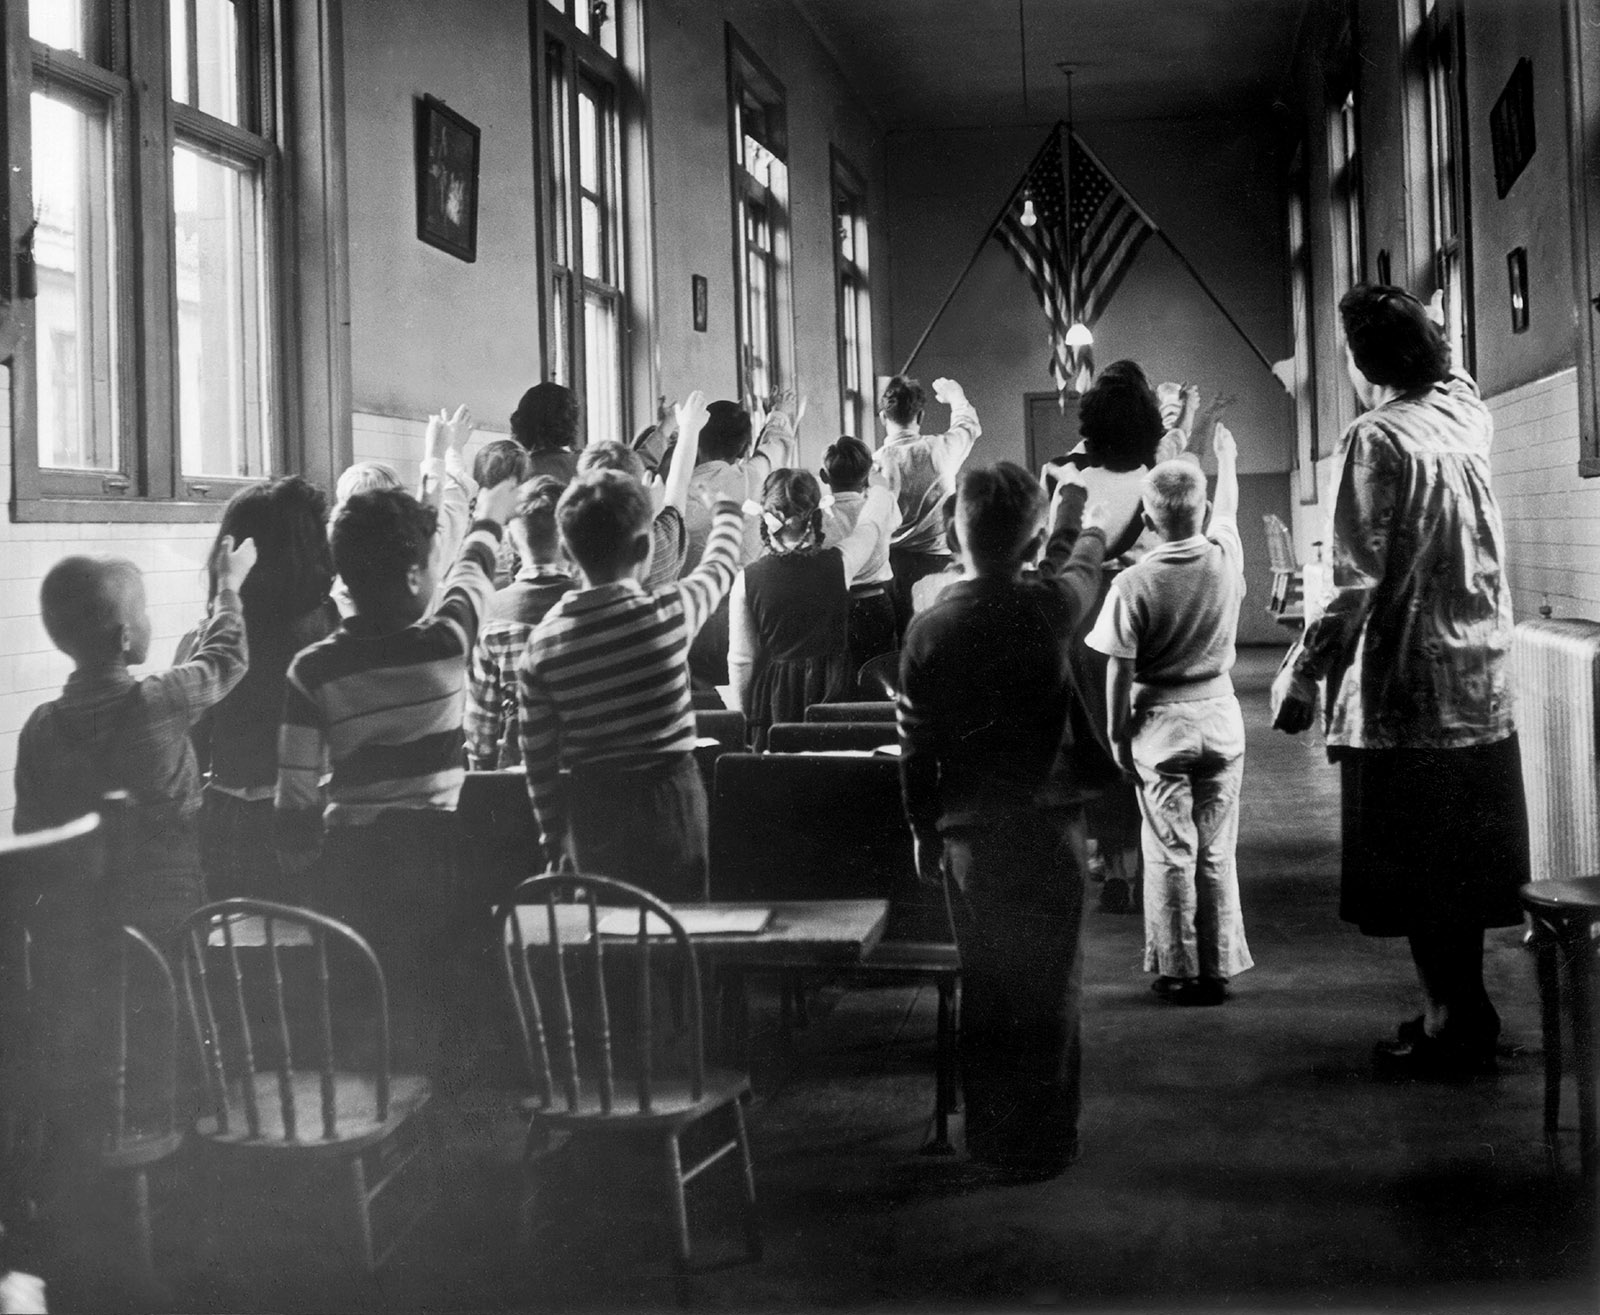 Children of immigrants pledging allegiance to the flag in a classroom on Ellis Island, 1940s